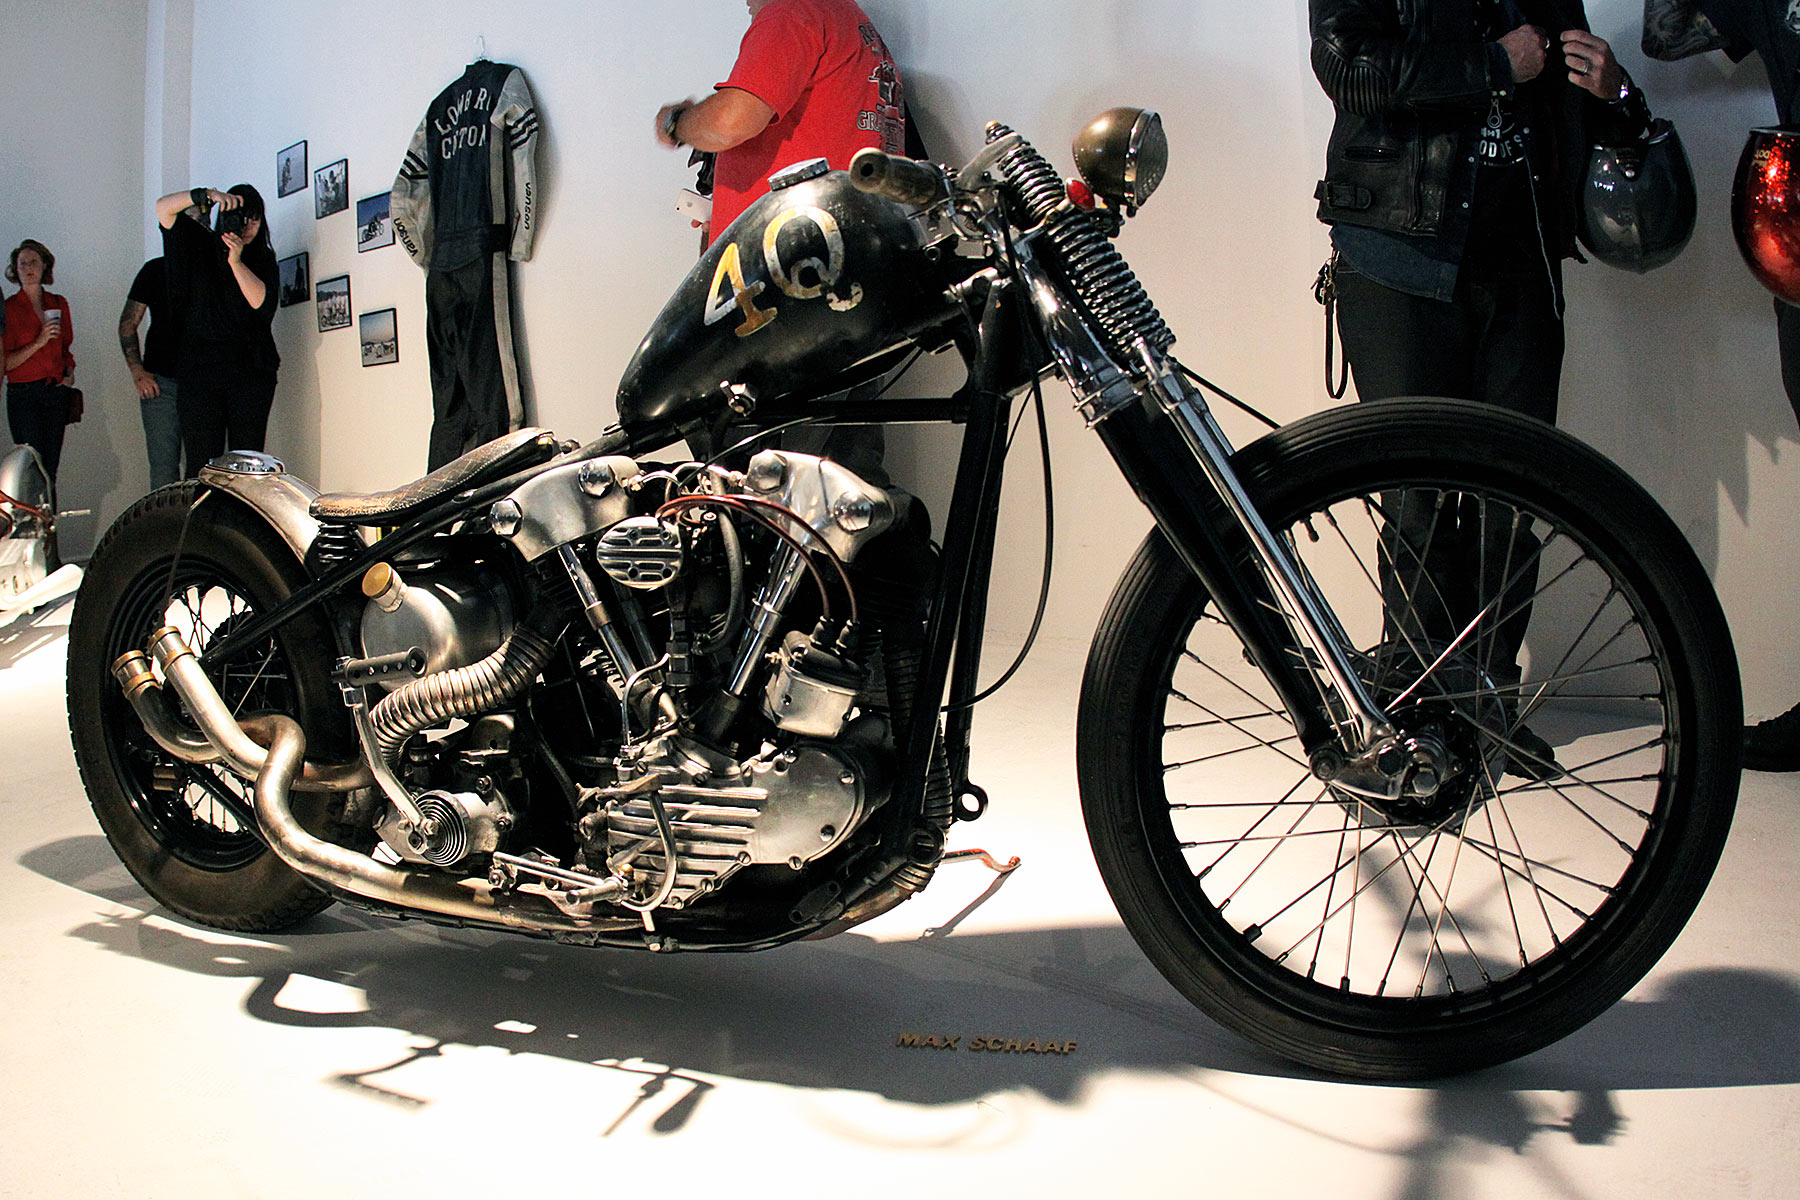 max schaaf's motorcycle at the brooklyn invitational